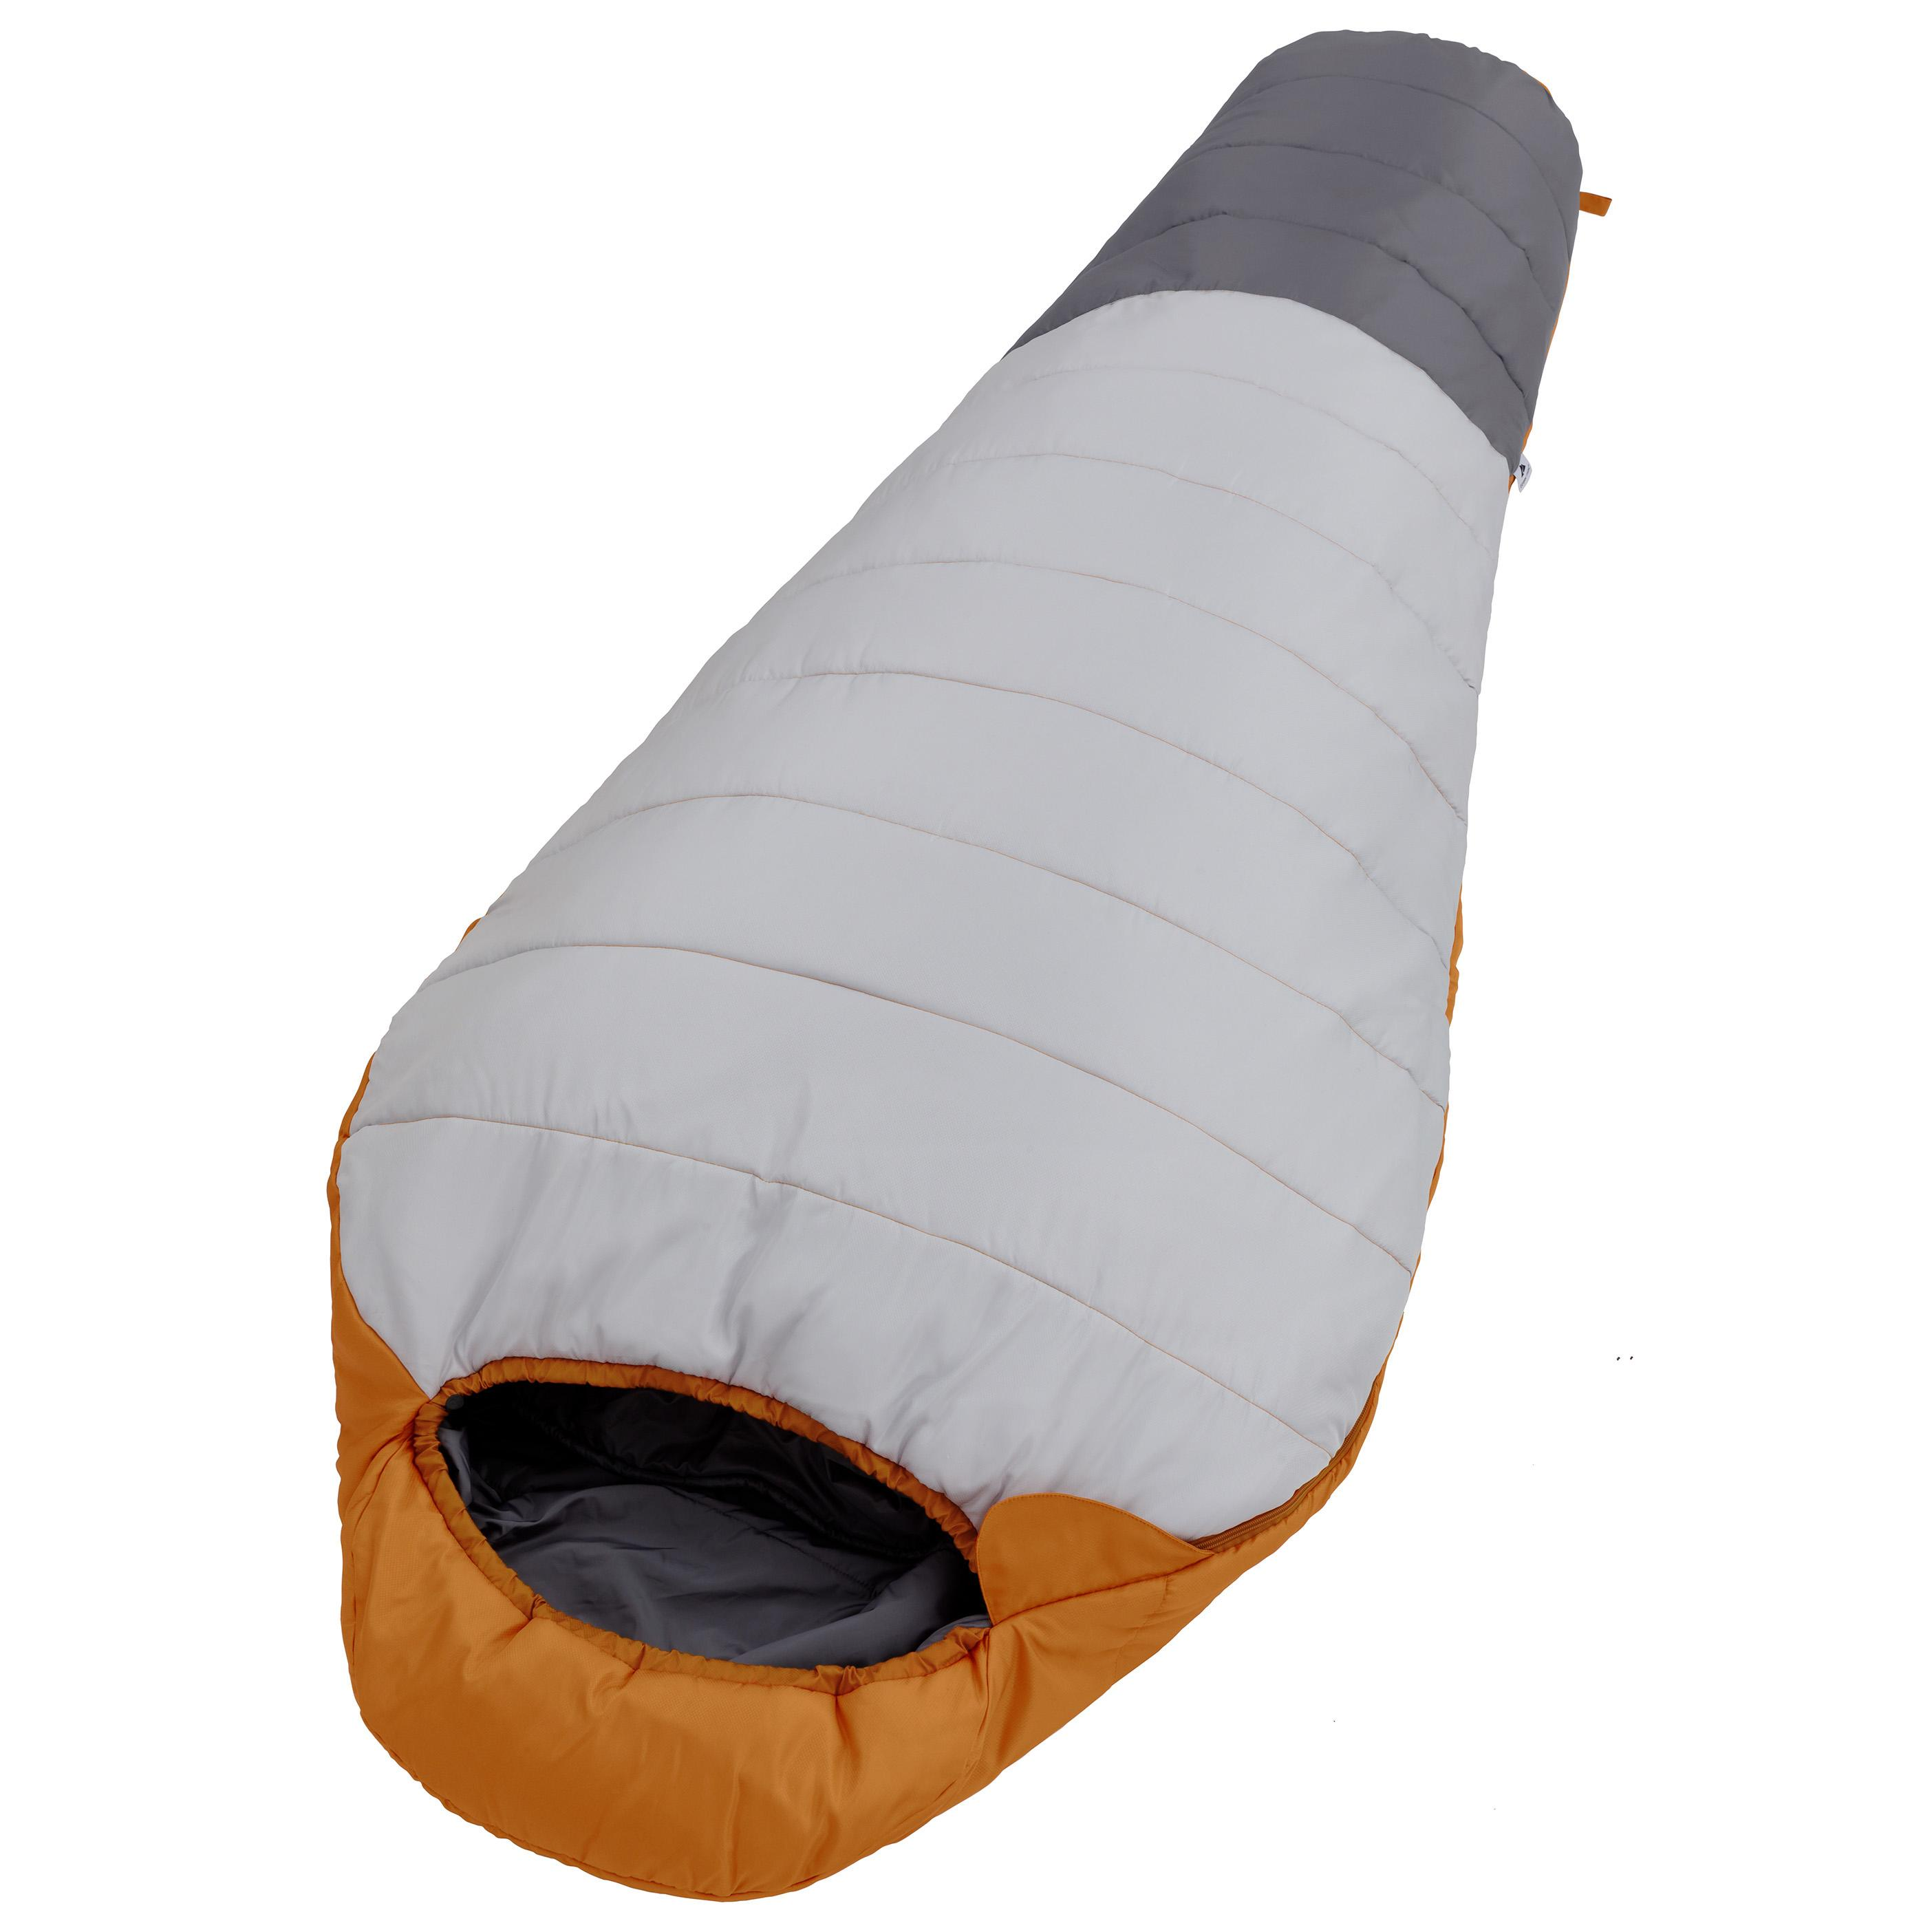 Ozark Trail Himont 20F Climatech Large Mummy Sleeping Bag for $29.99